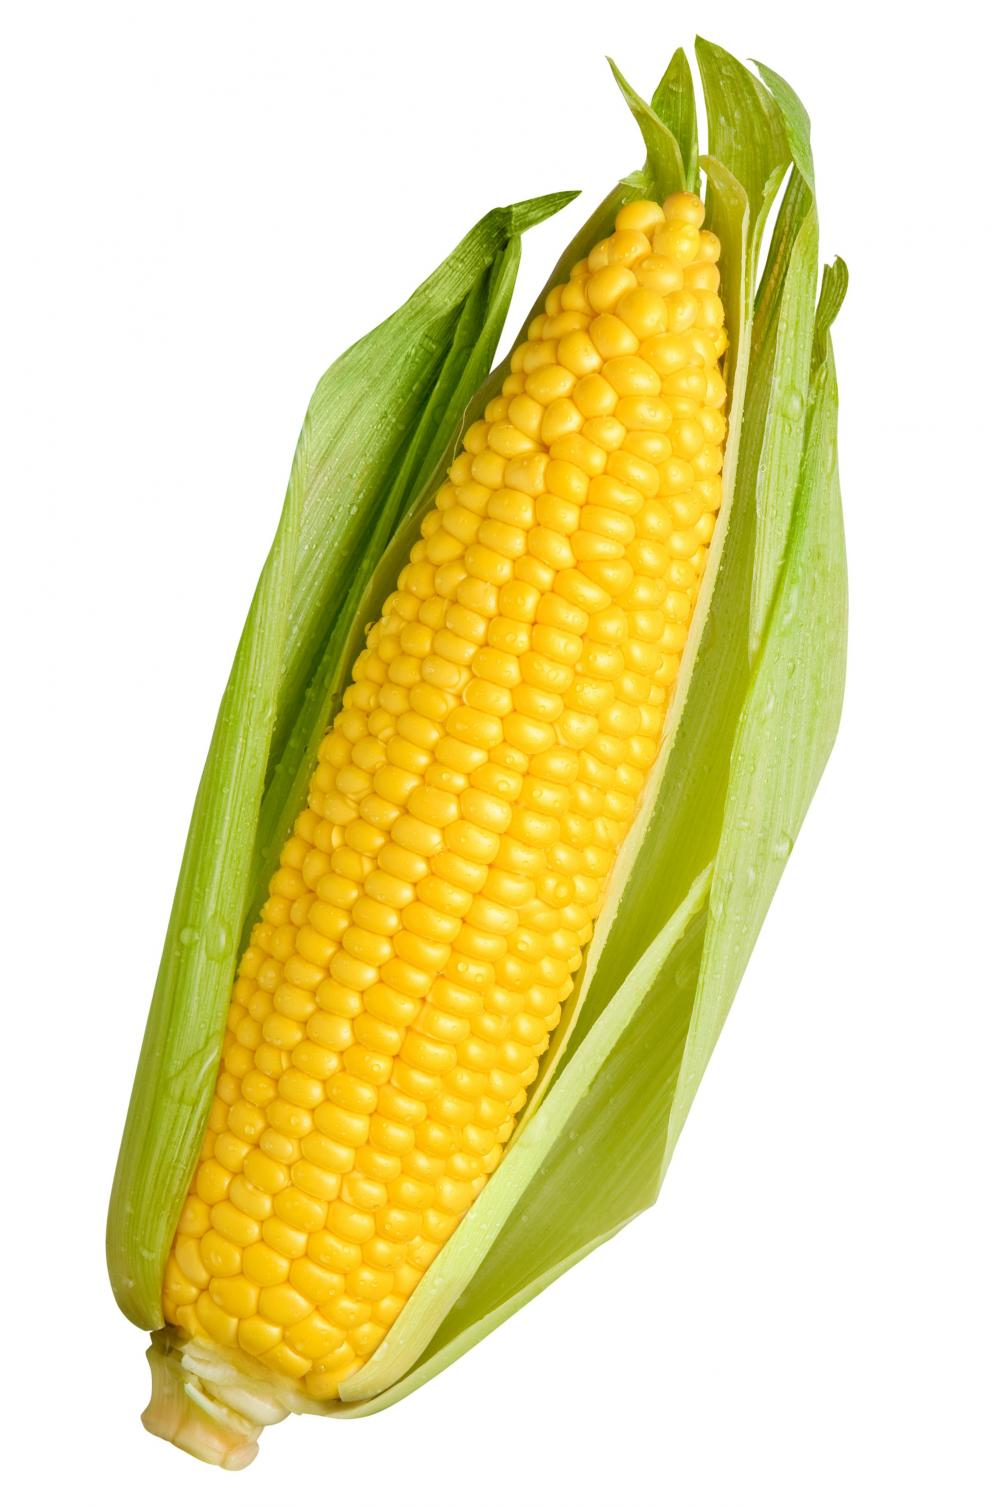 Single Corn Stock Photo - Image: 51131504